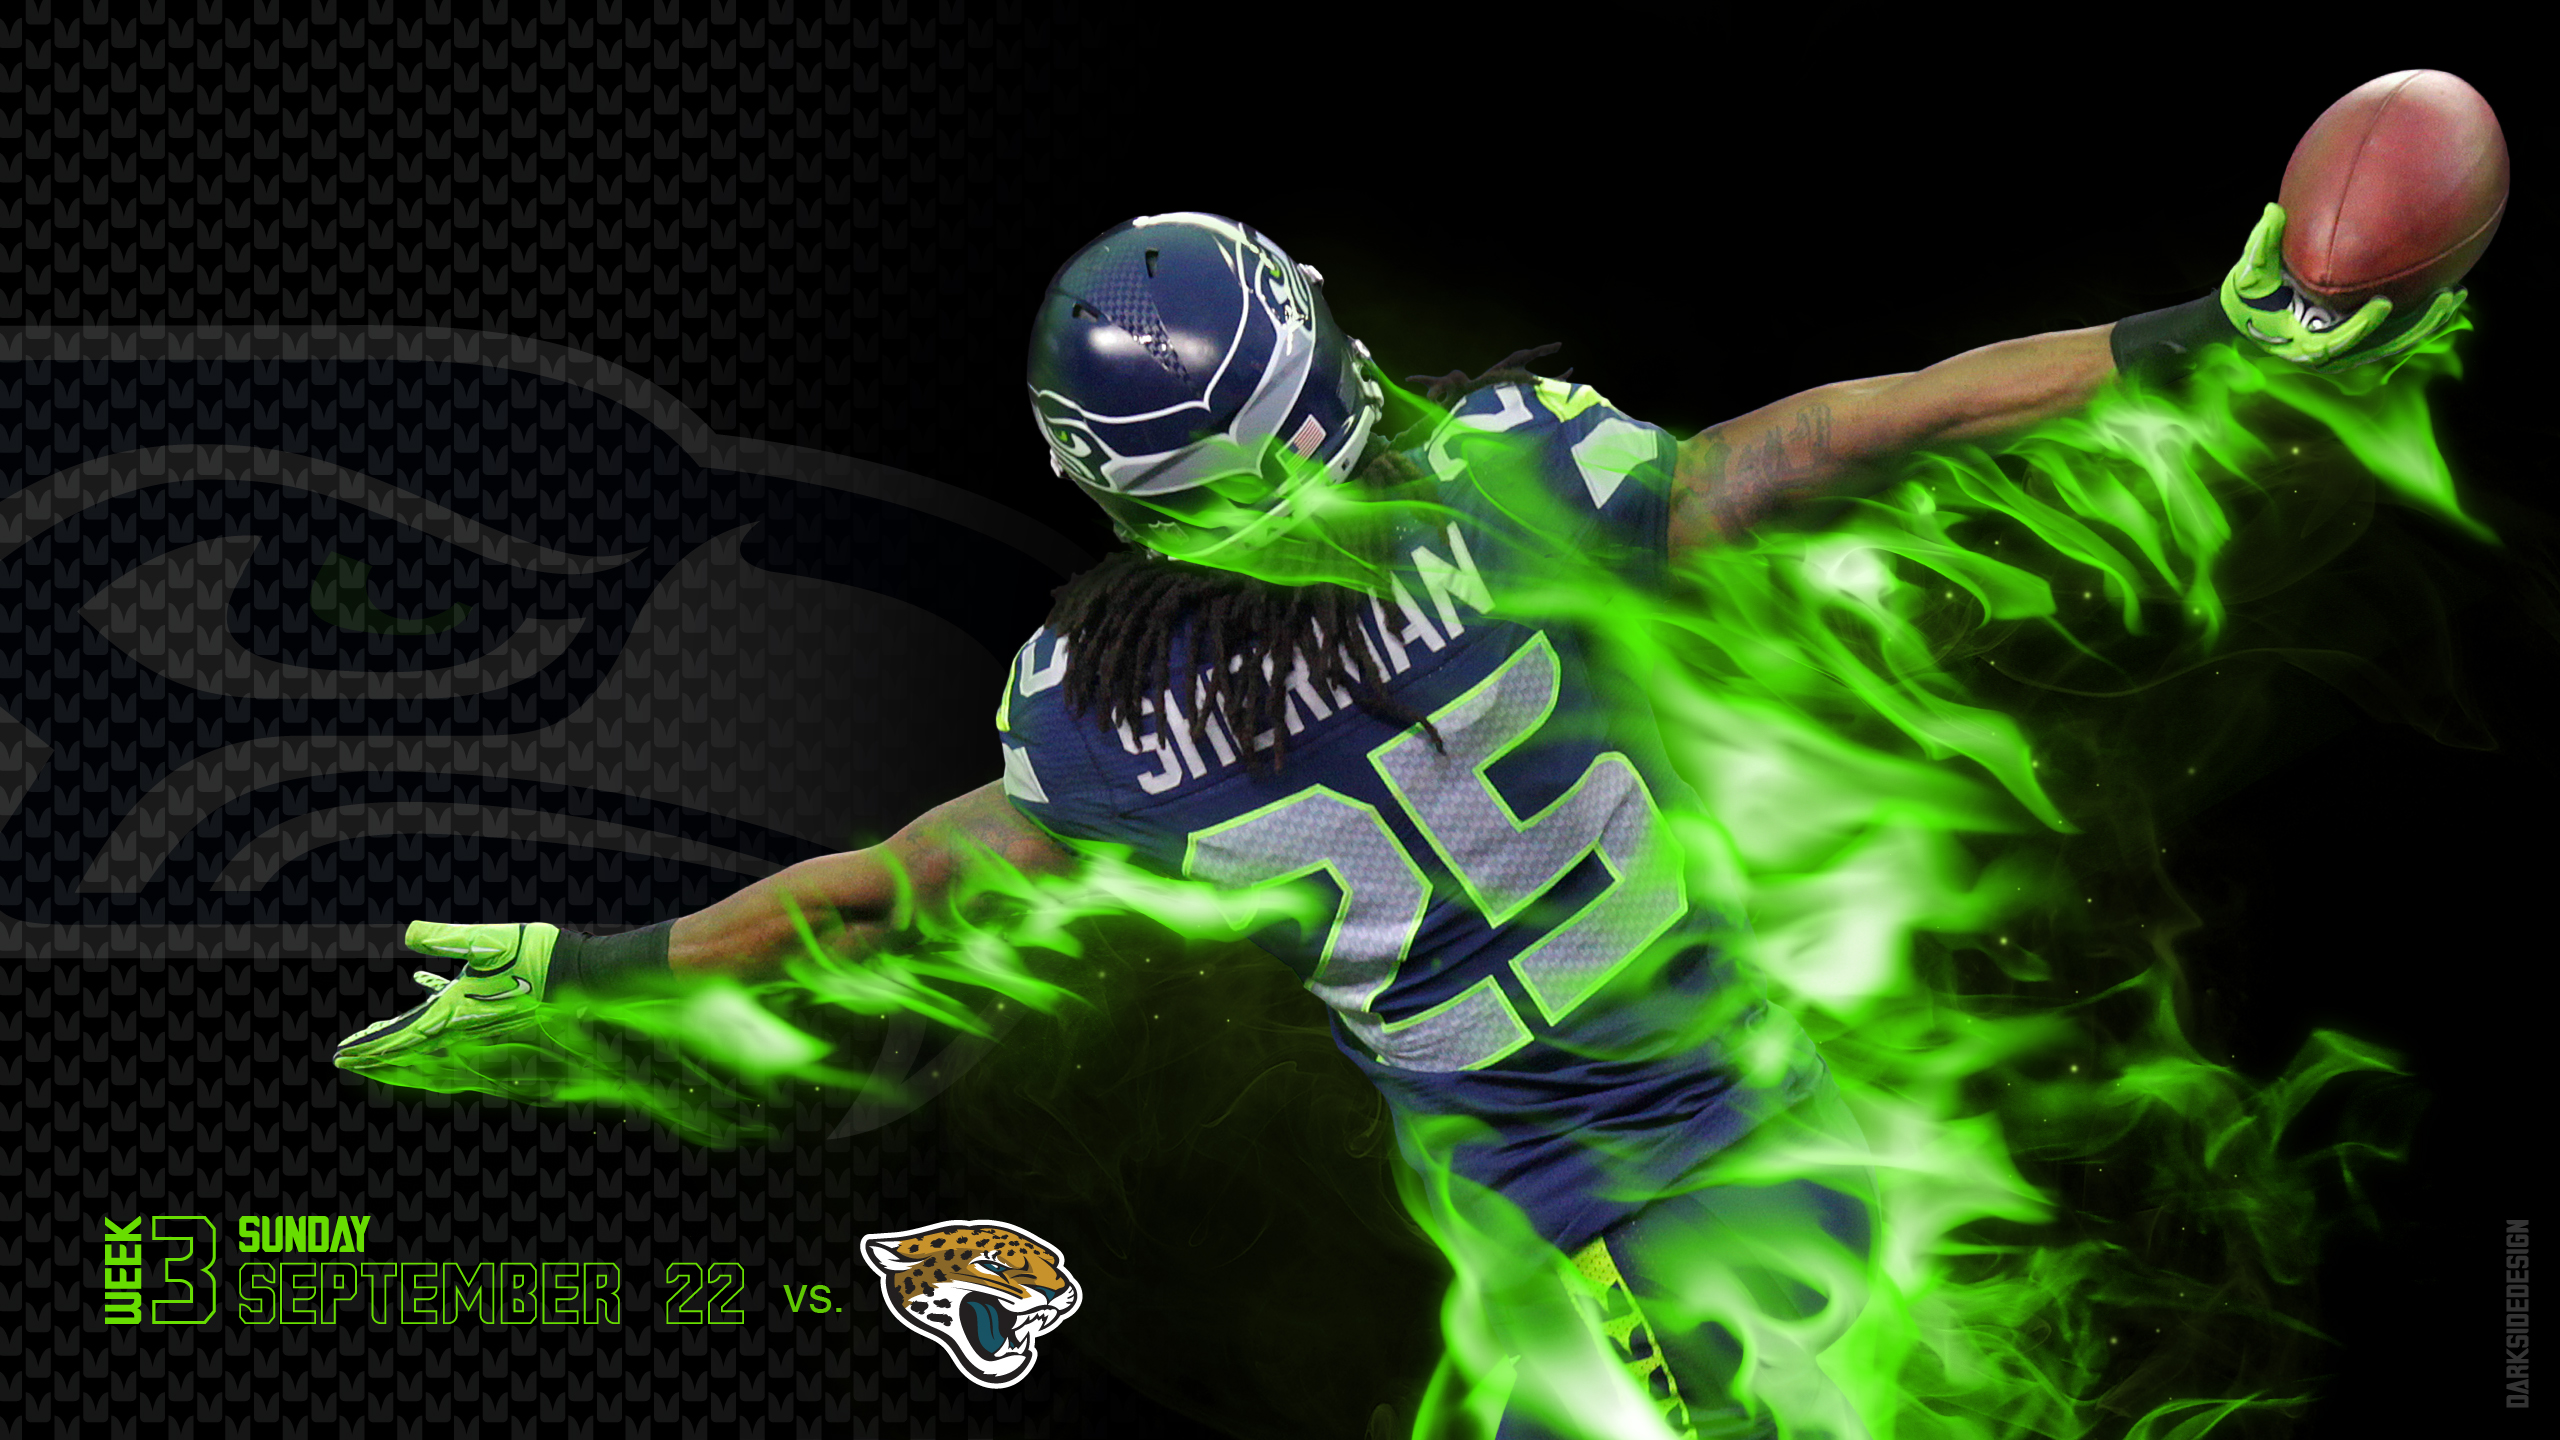 SEATTLE SEAHAWKS football nfl we wallpaper background 2560x1440